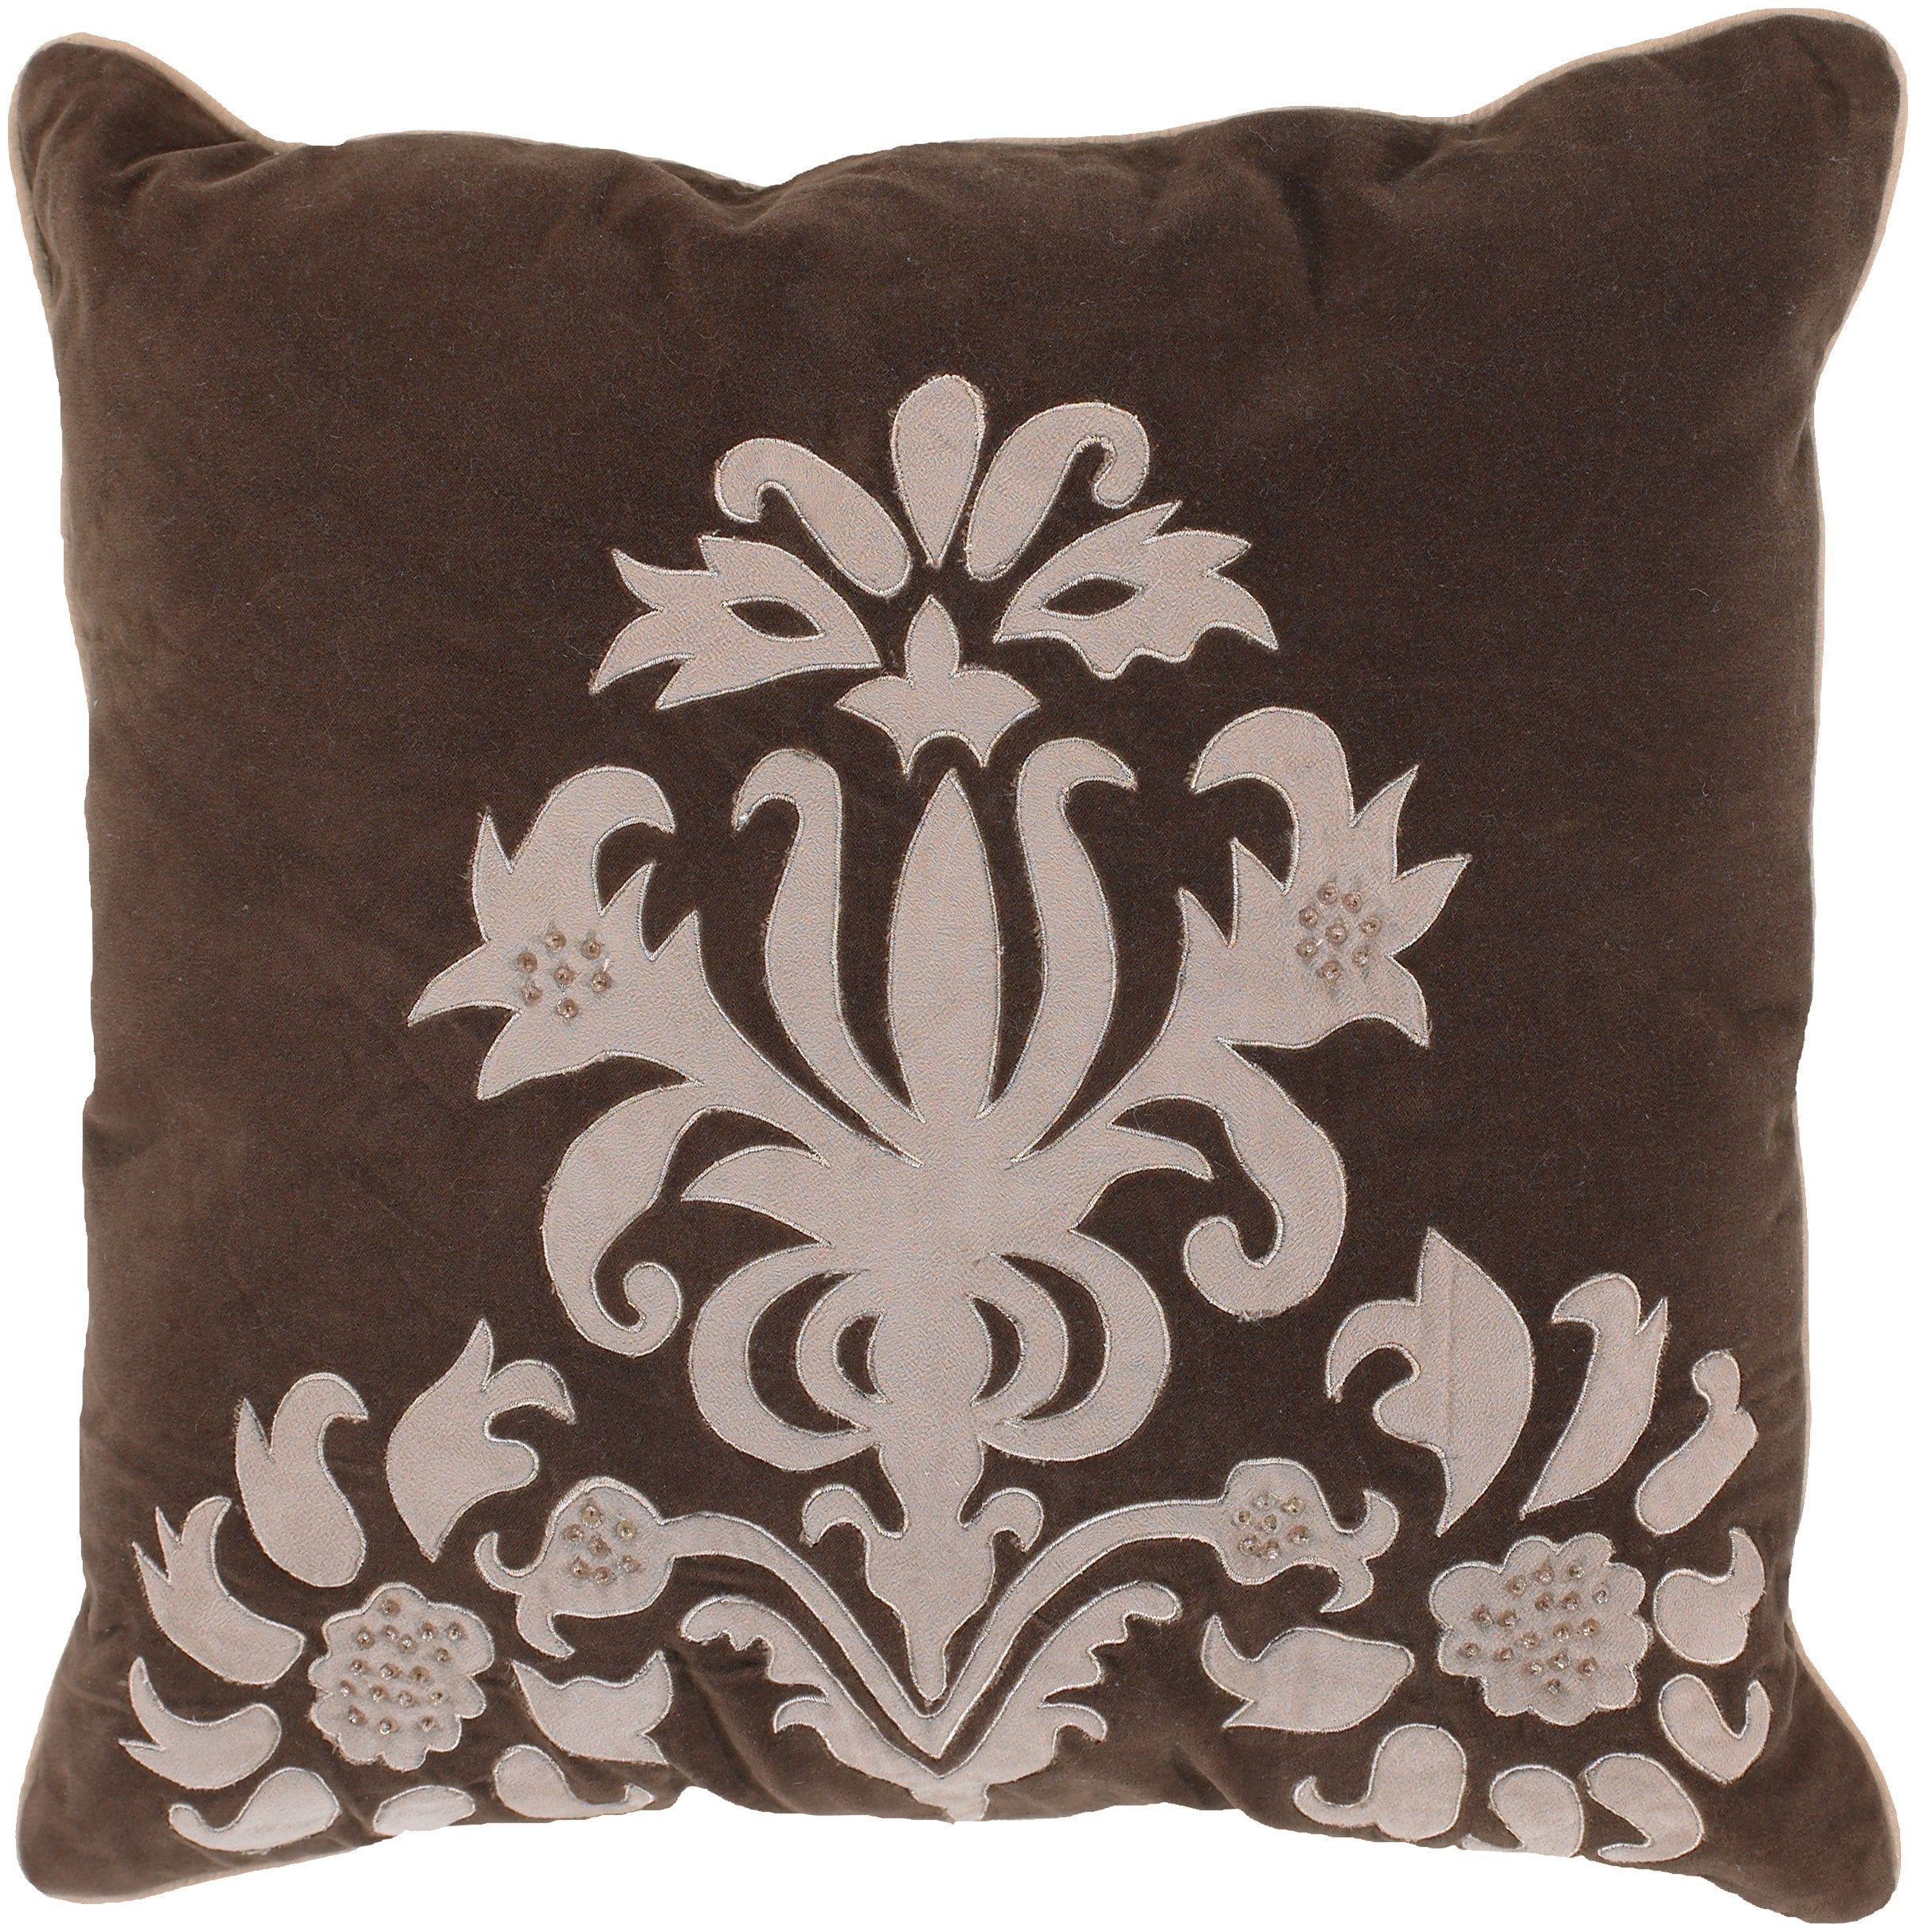 Shandy 22-inch Down Decorative Pillow